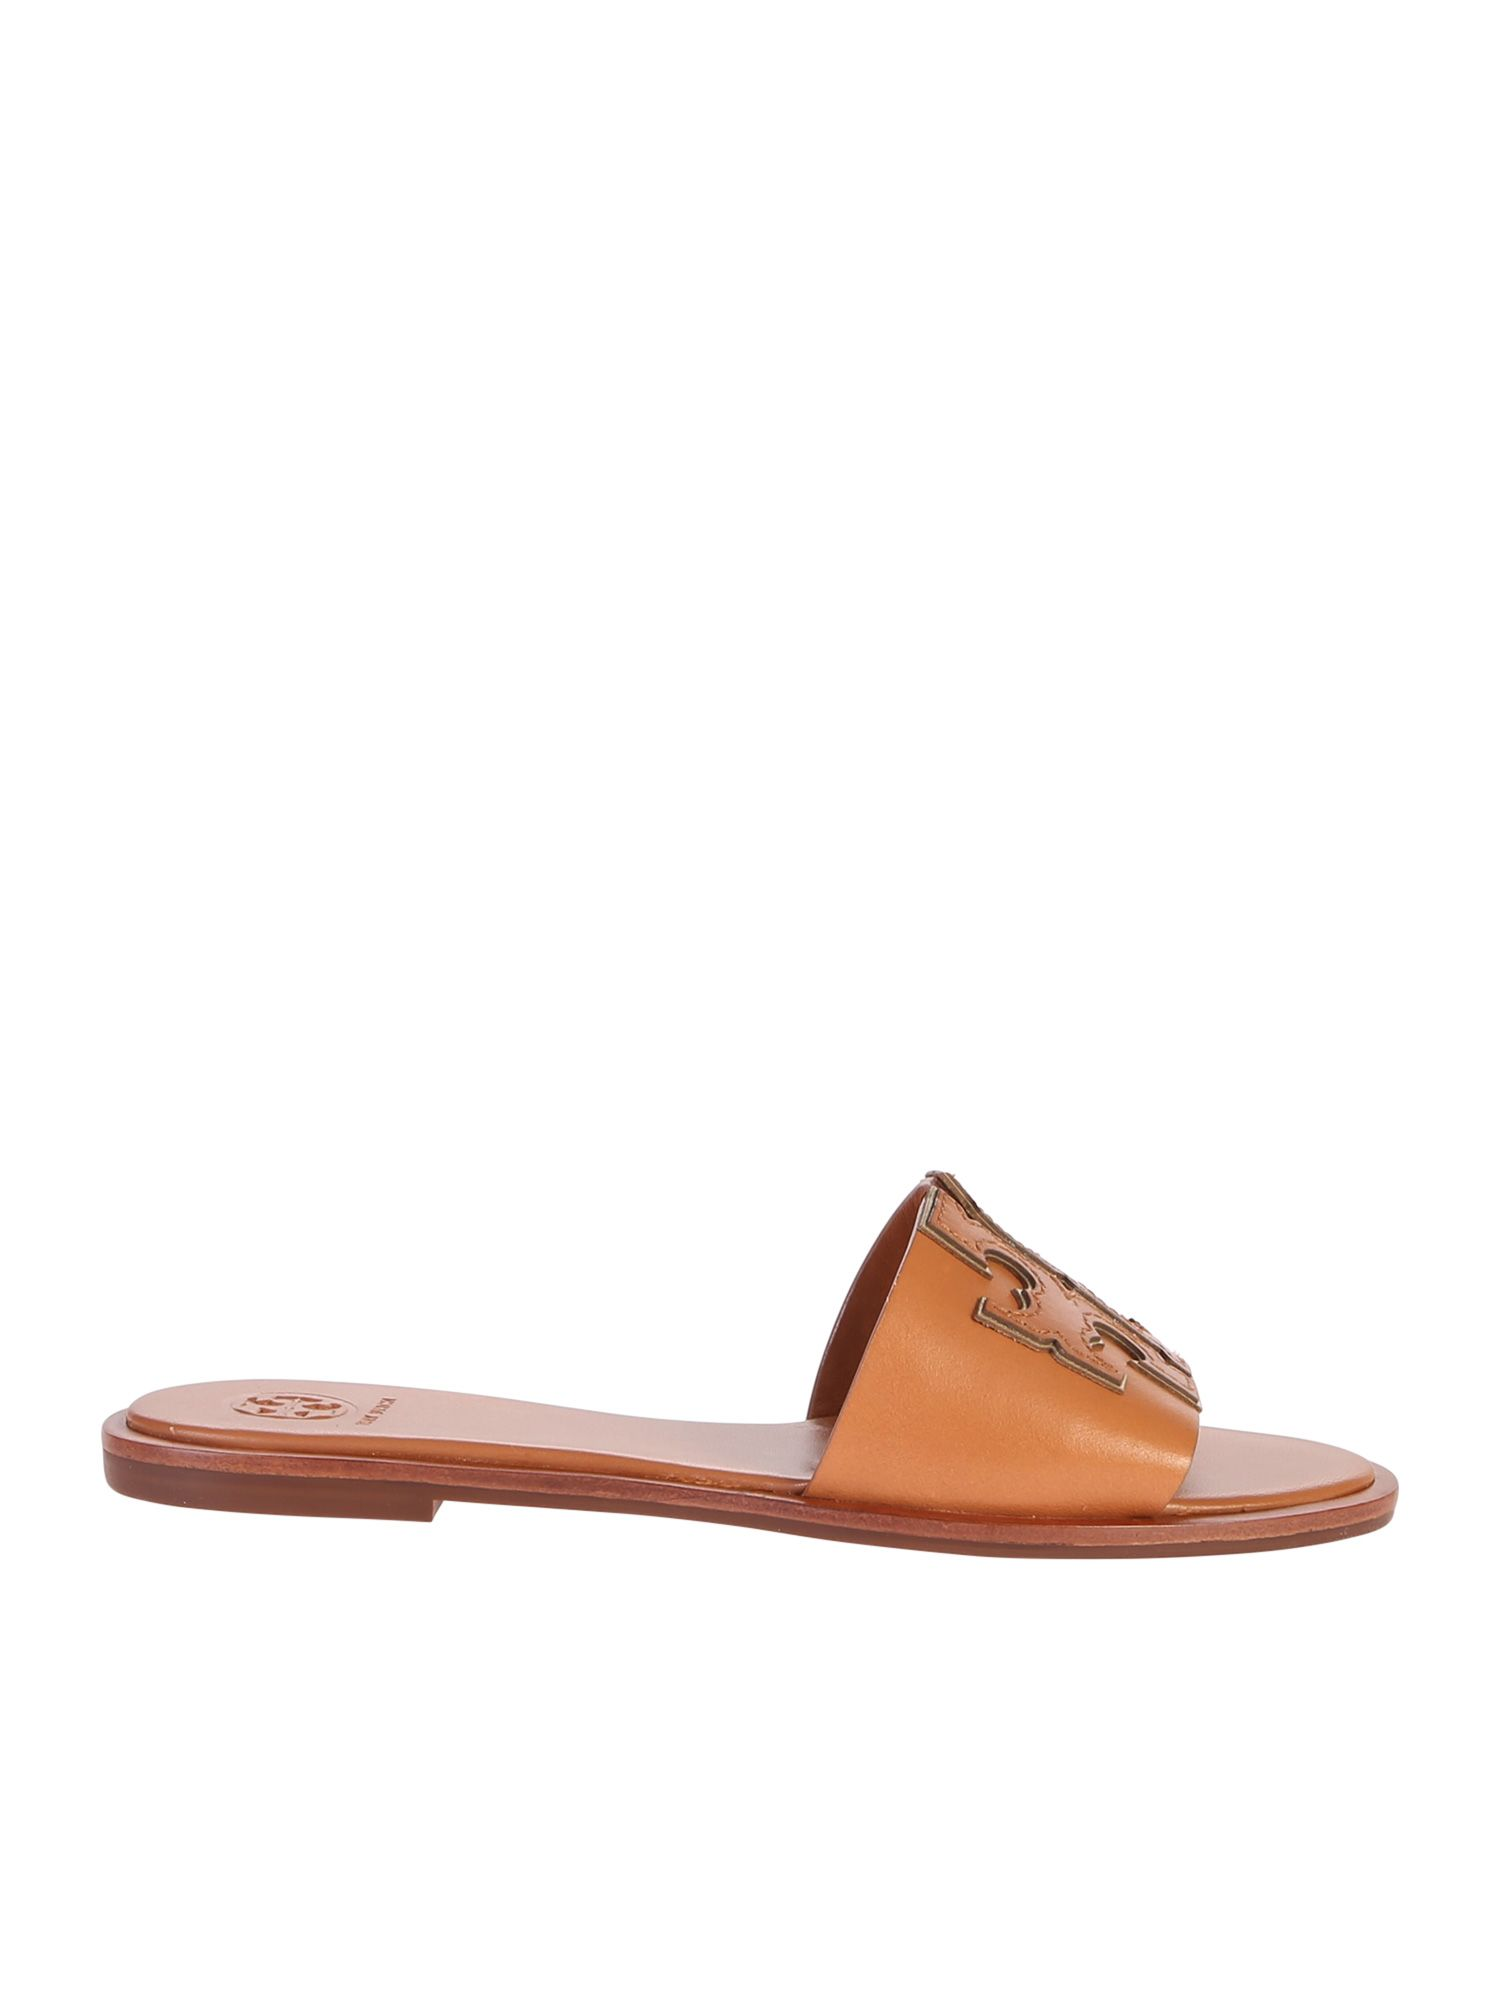 23025dde37d5 Tory Burch Tory Burch Ines Sandals - Brown - 10830337